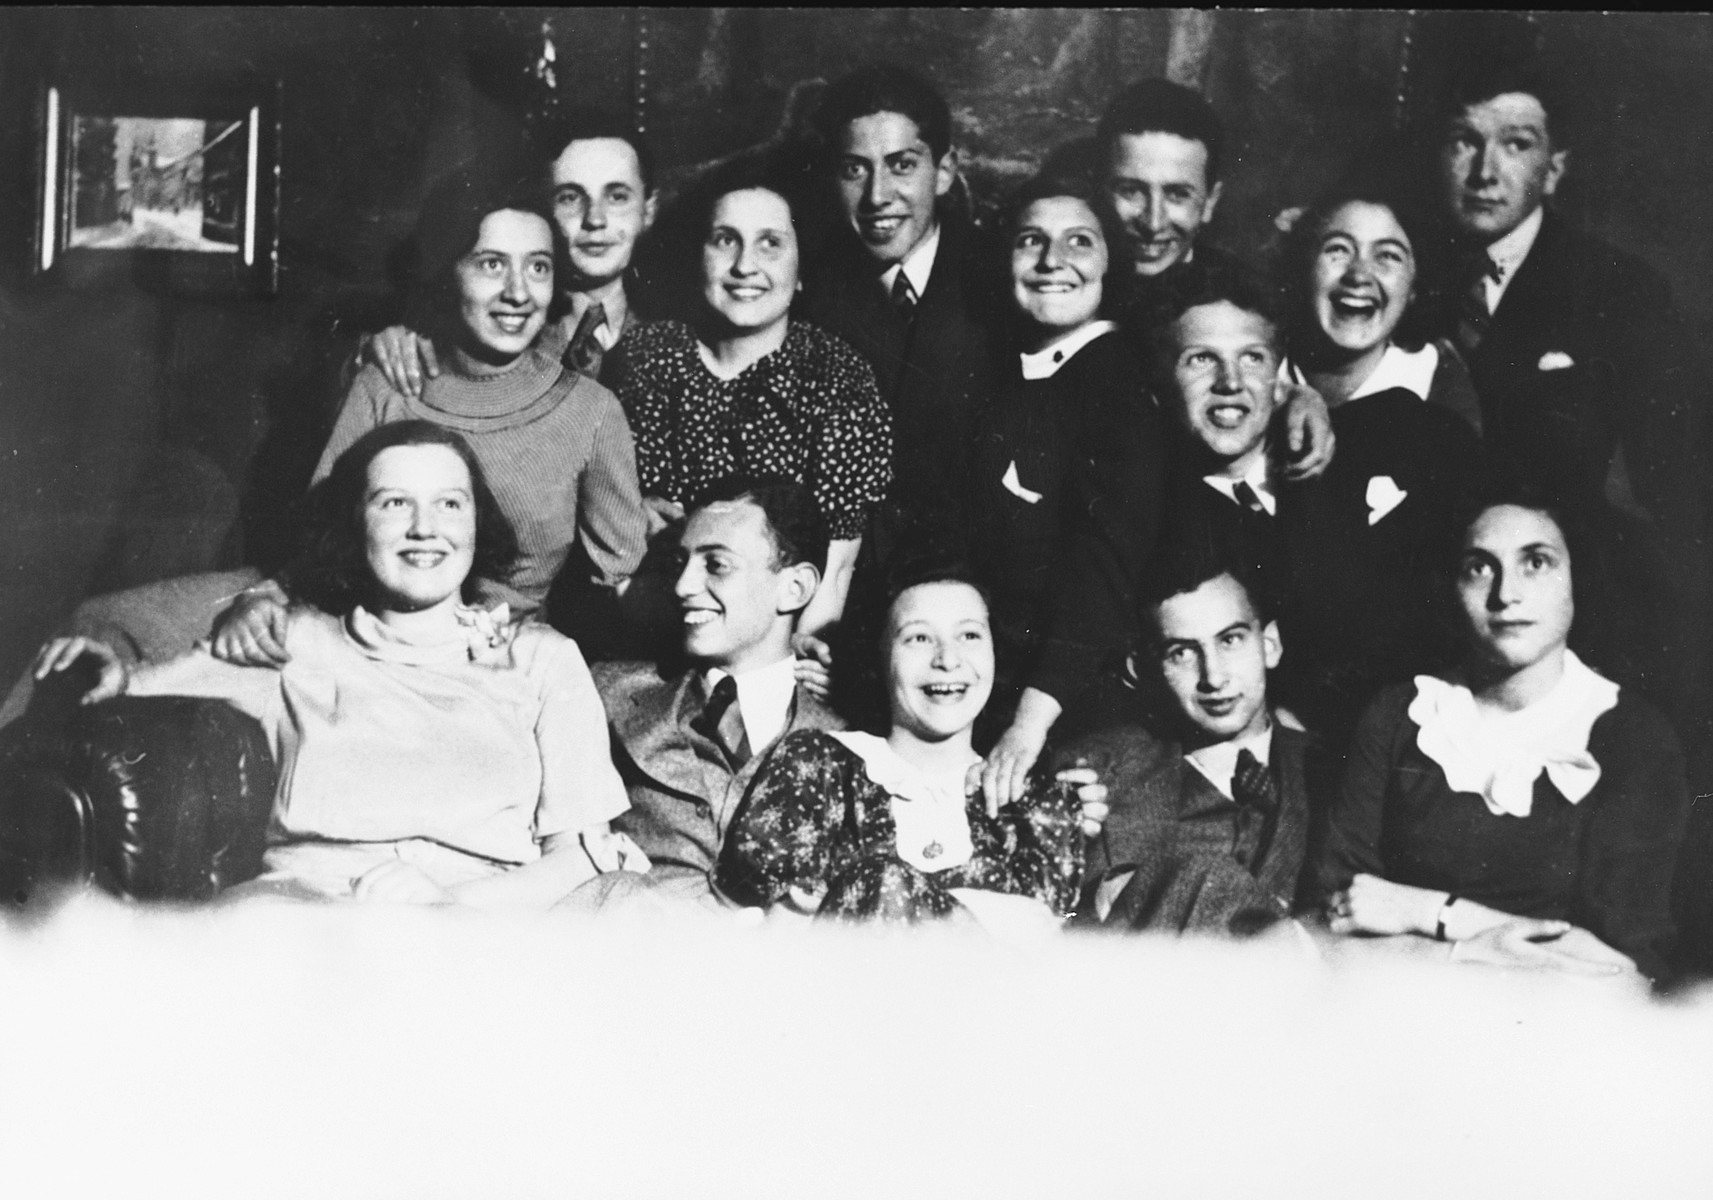 Group portrait of a group of Polish-Jewish students.  Ludmilla Lewinson is pictured third from the left.